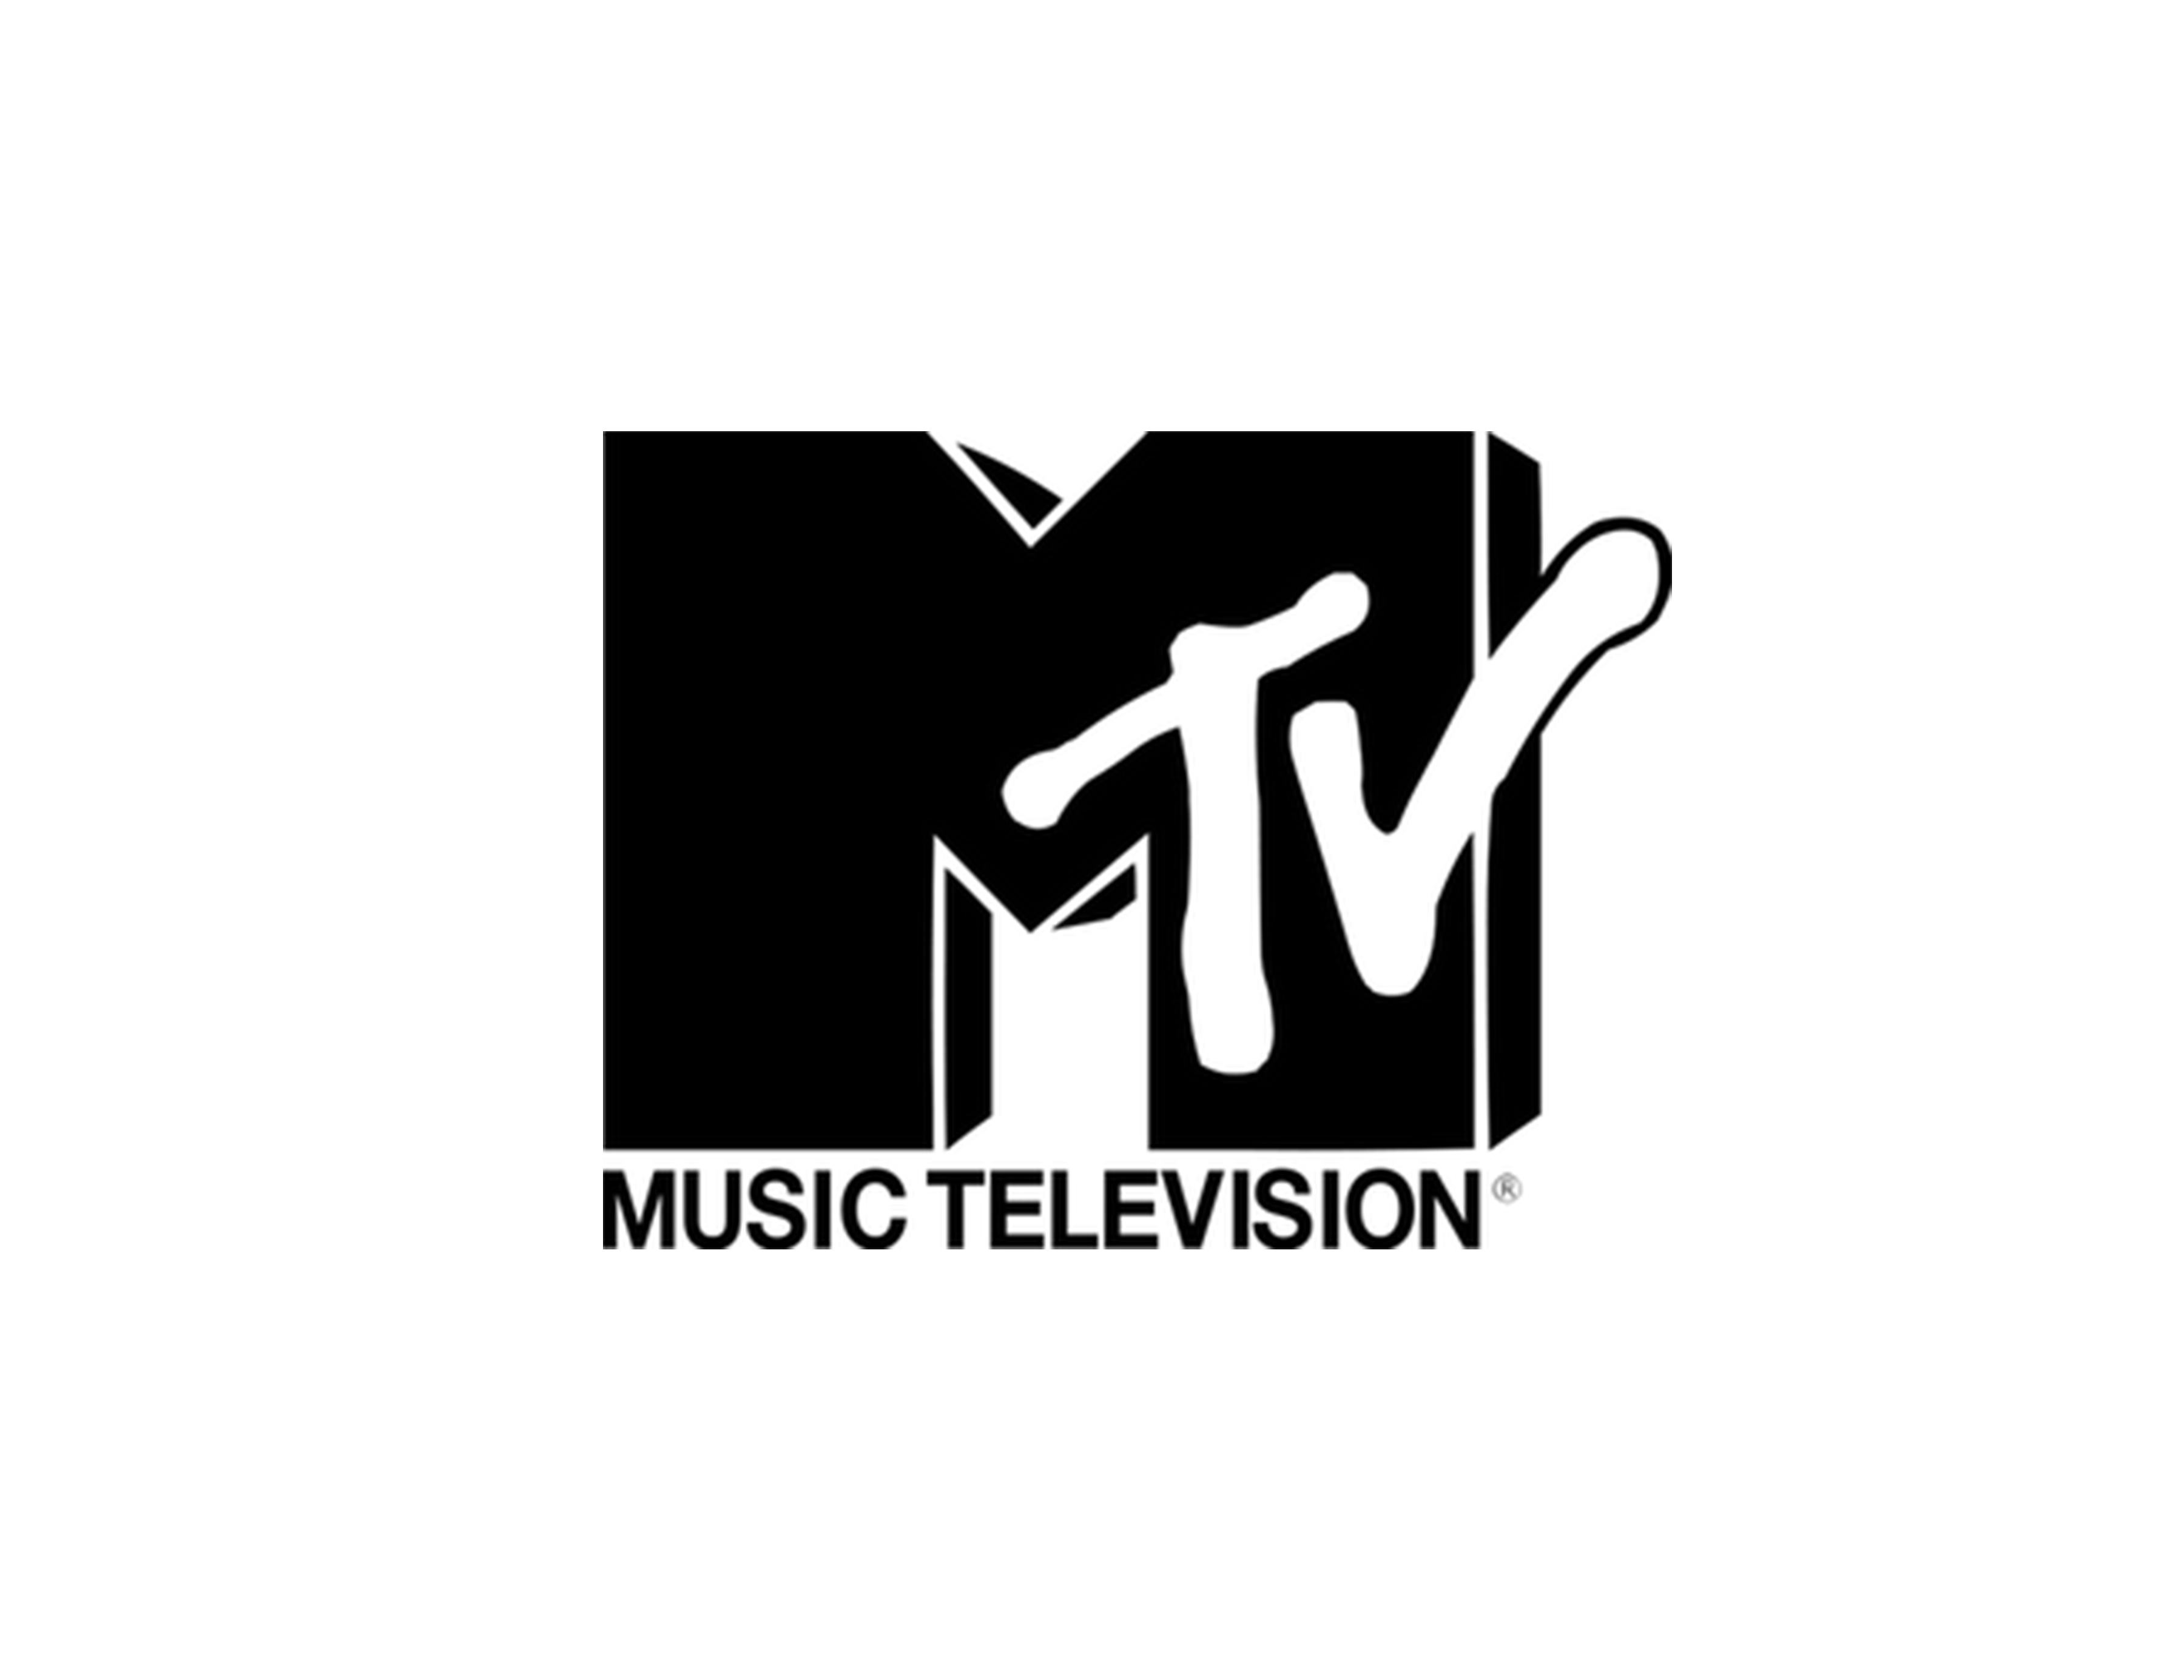 https://www.timvalkenhoff.nl/wp-content/uploads/2018/10/MTV.png